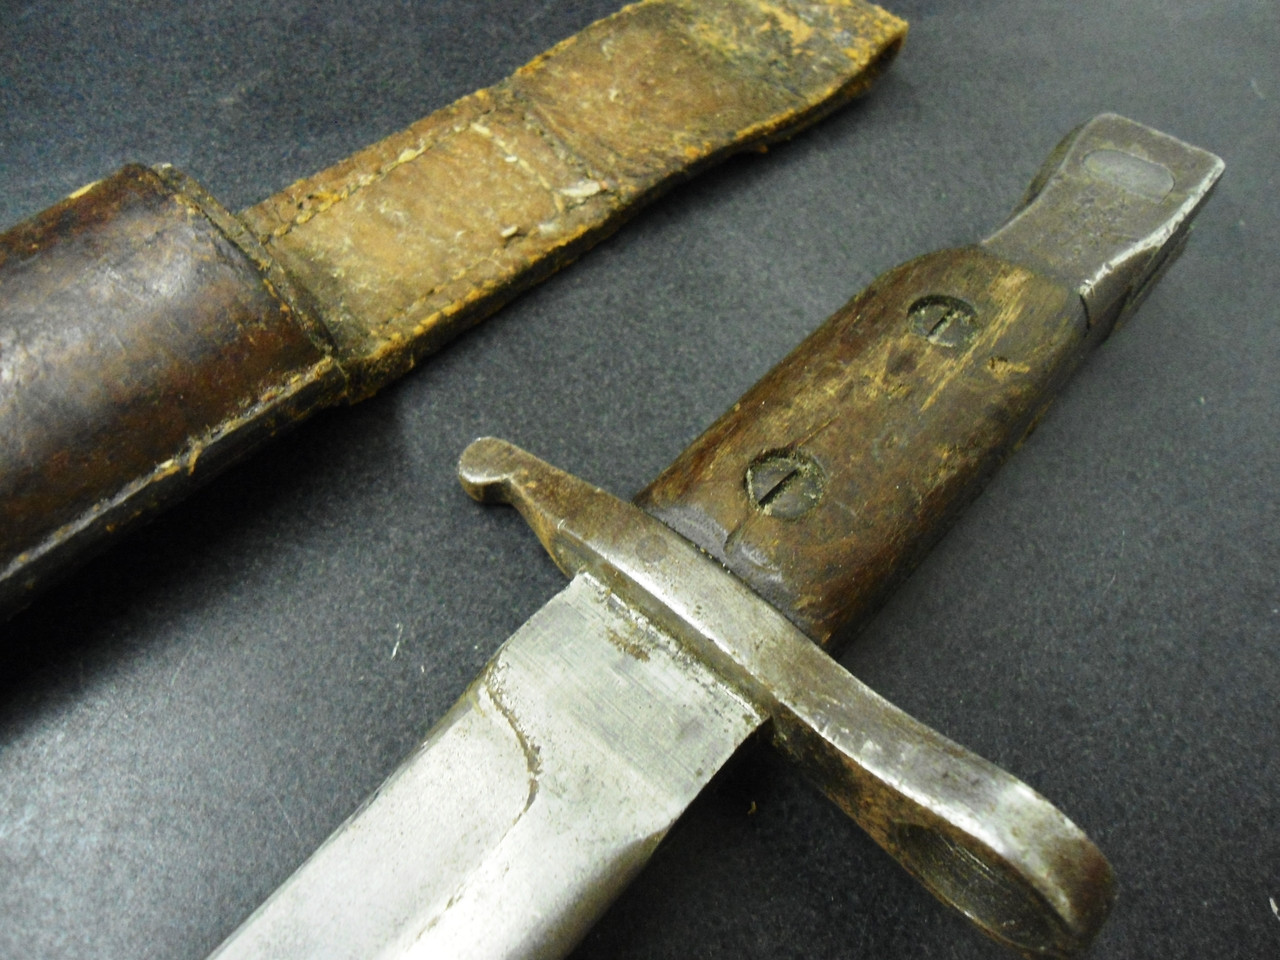 Canadian Ross Rifle M1910 Modified Bayonet with Scabbard